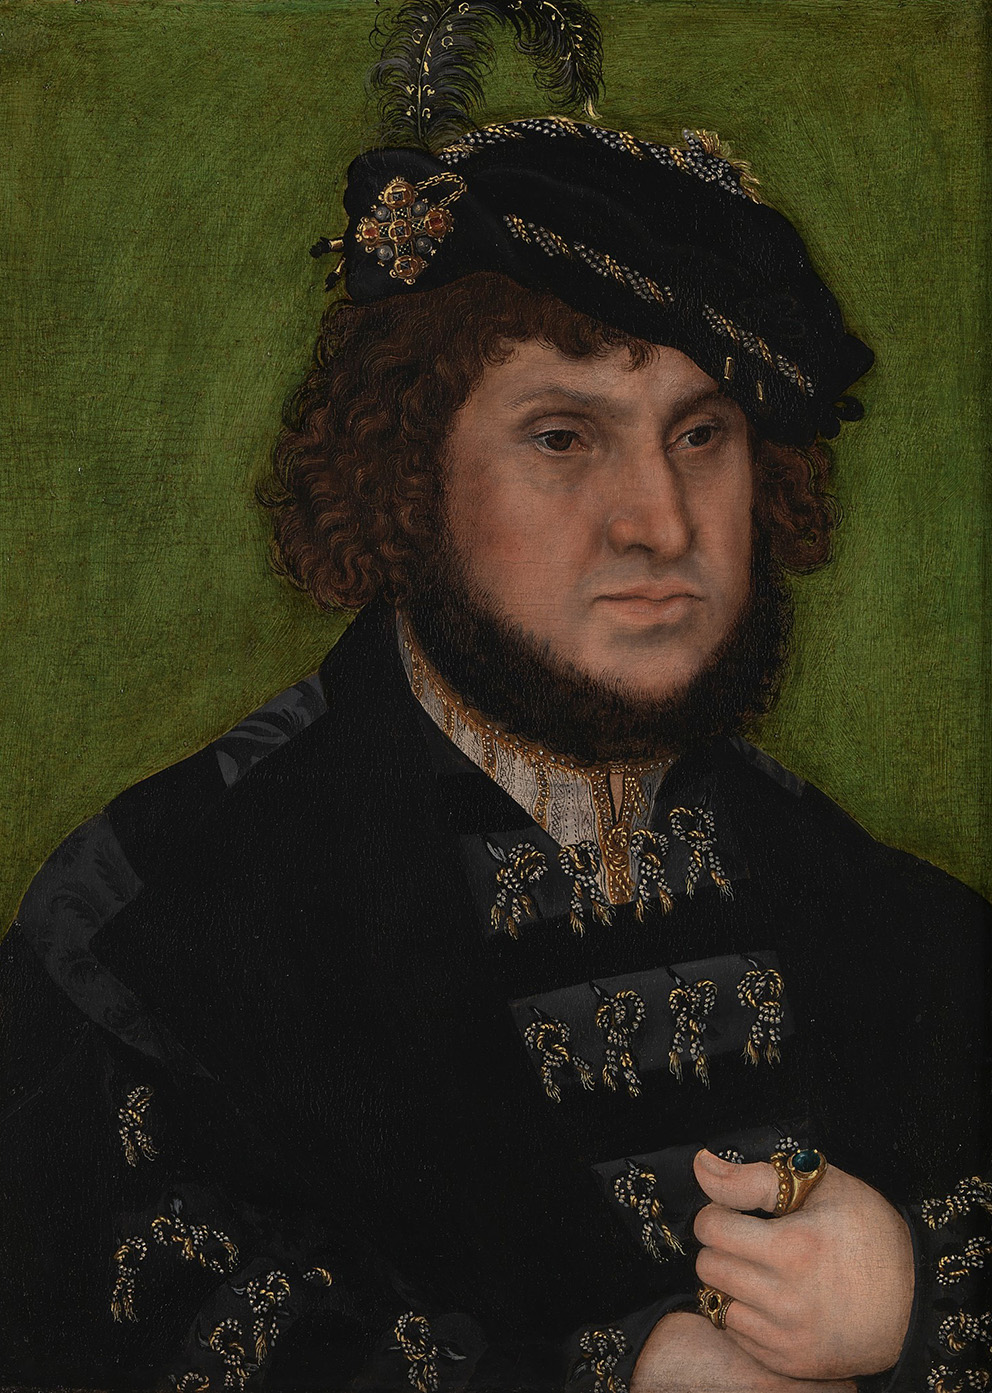 Lucas Cranach the Elder (1472-1553), Portrait of Johann the Steadfast, 1509, oil on wood.Photograph © The National Gallery, London